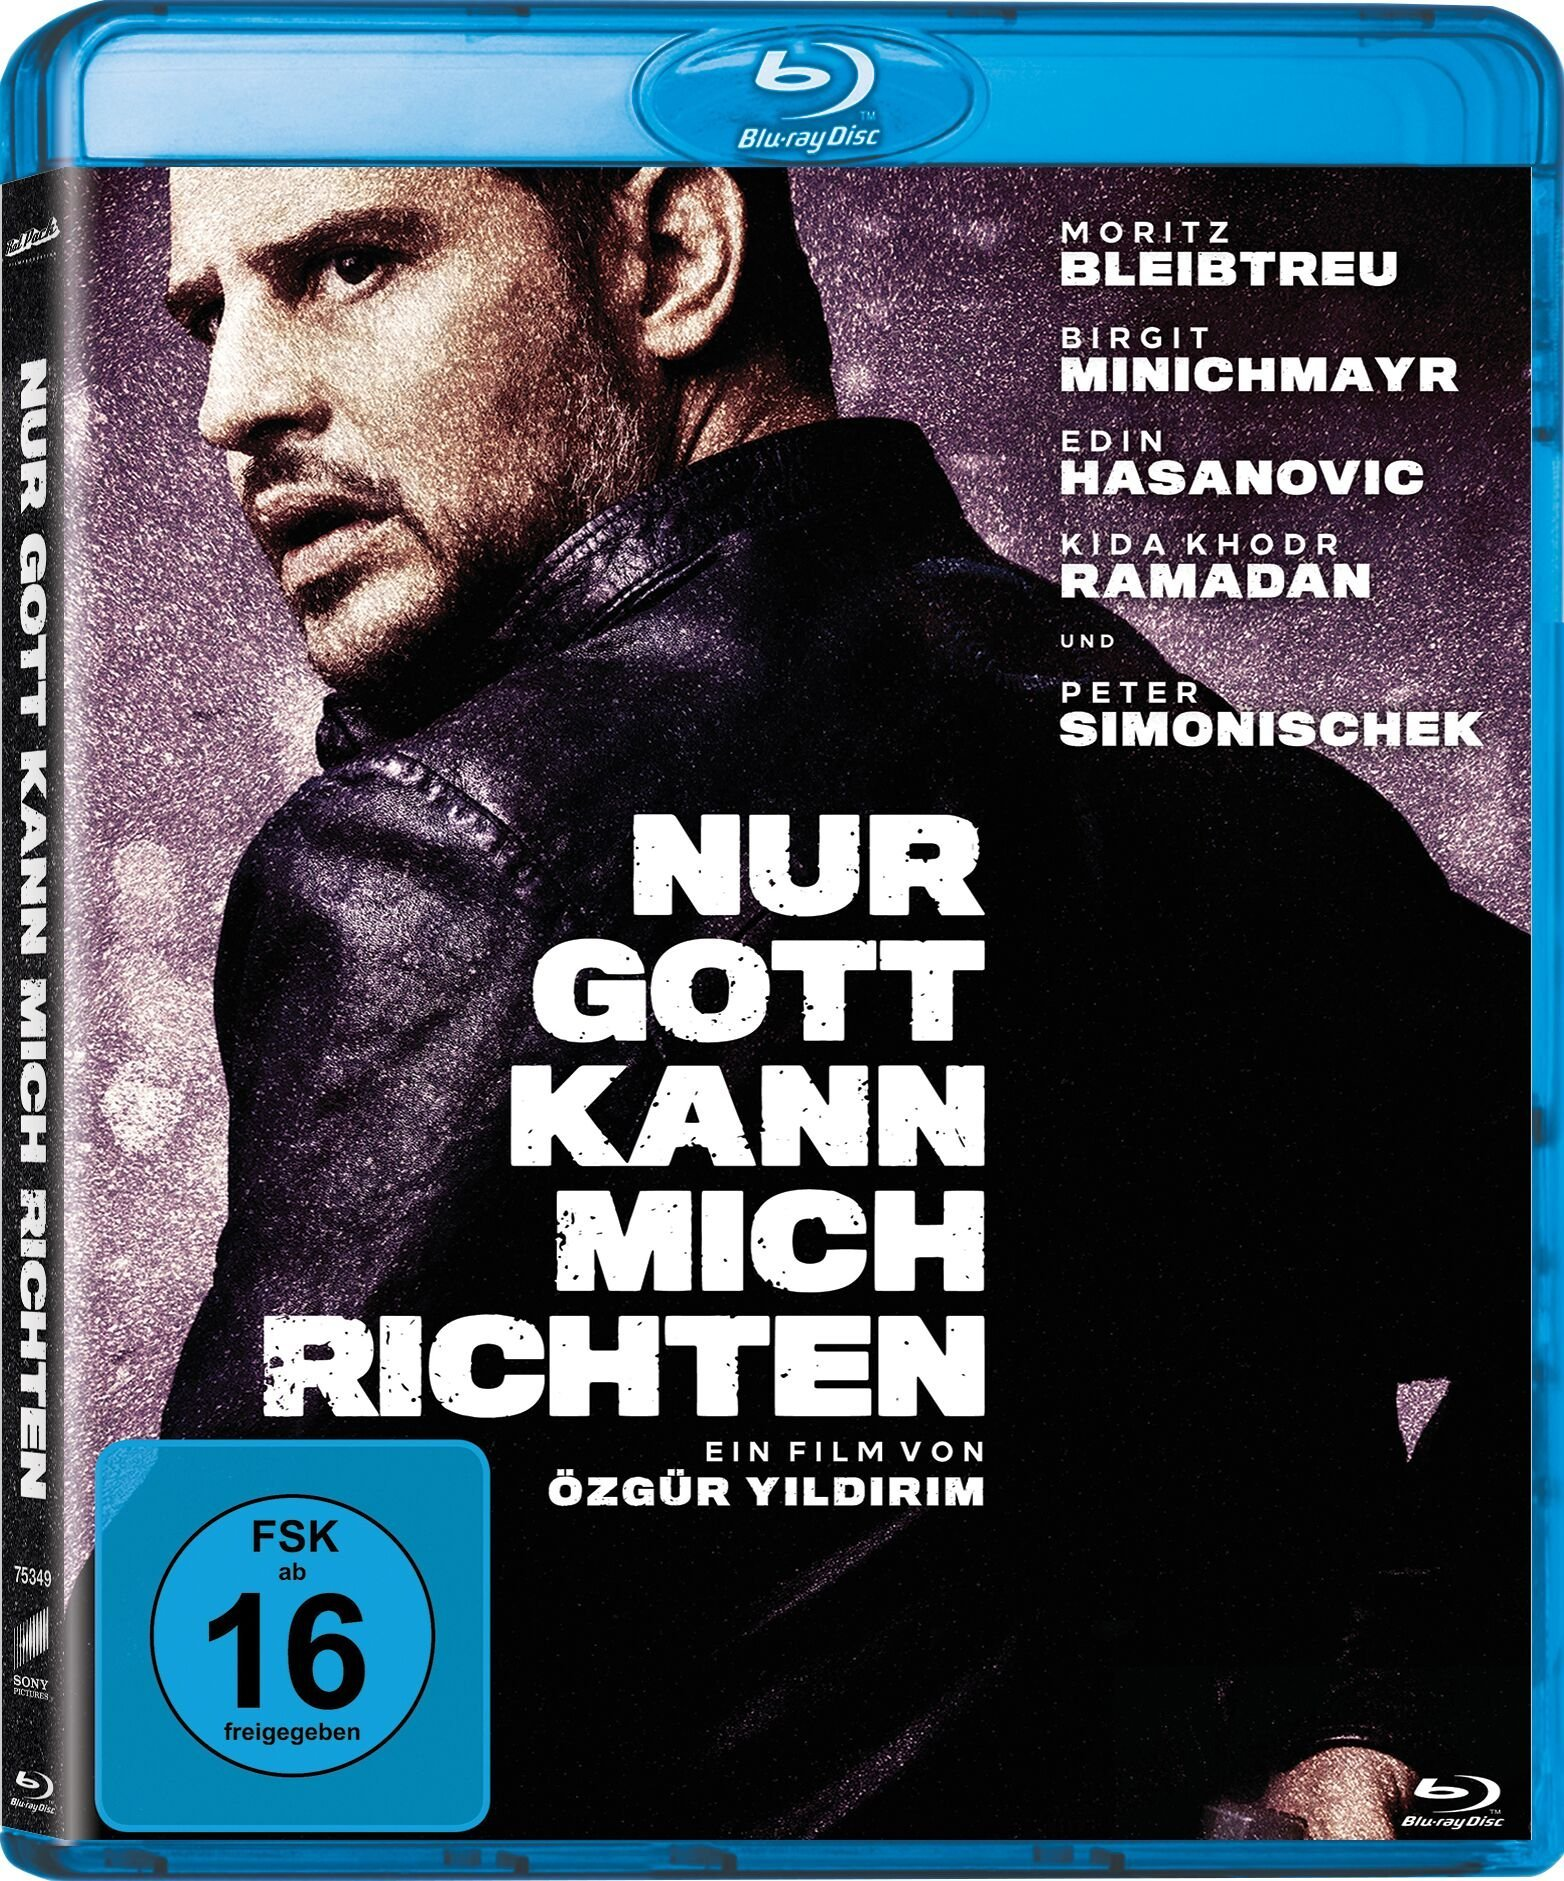 download Nur.Gott.kann.mich.richten.2017.German.1080p.BluRay.AVC-AVC4D